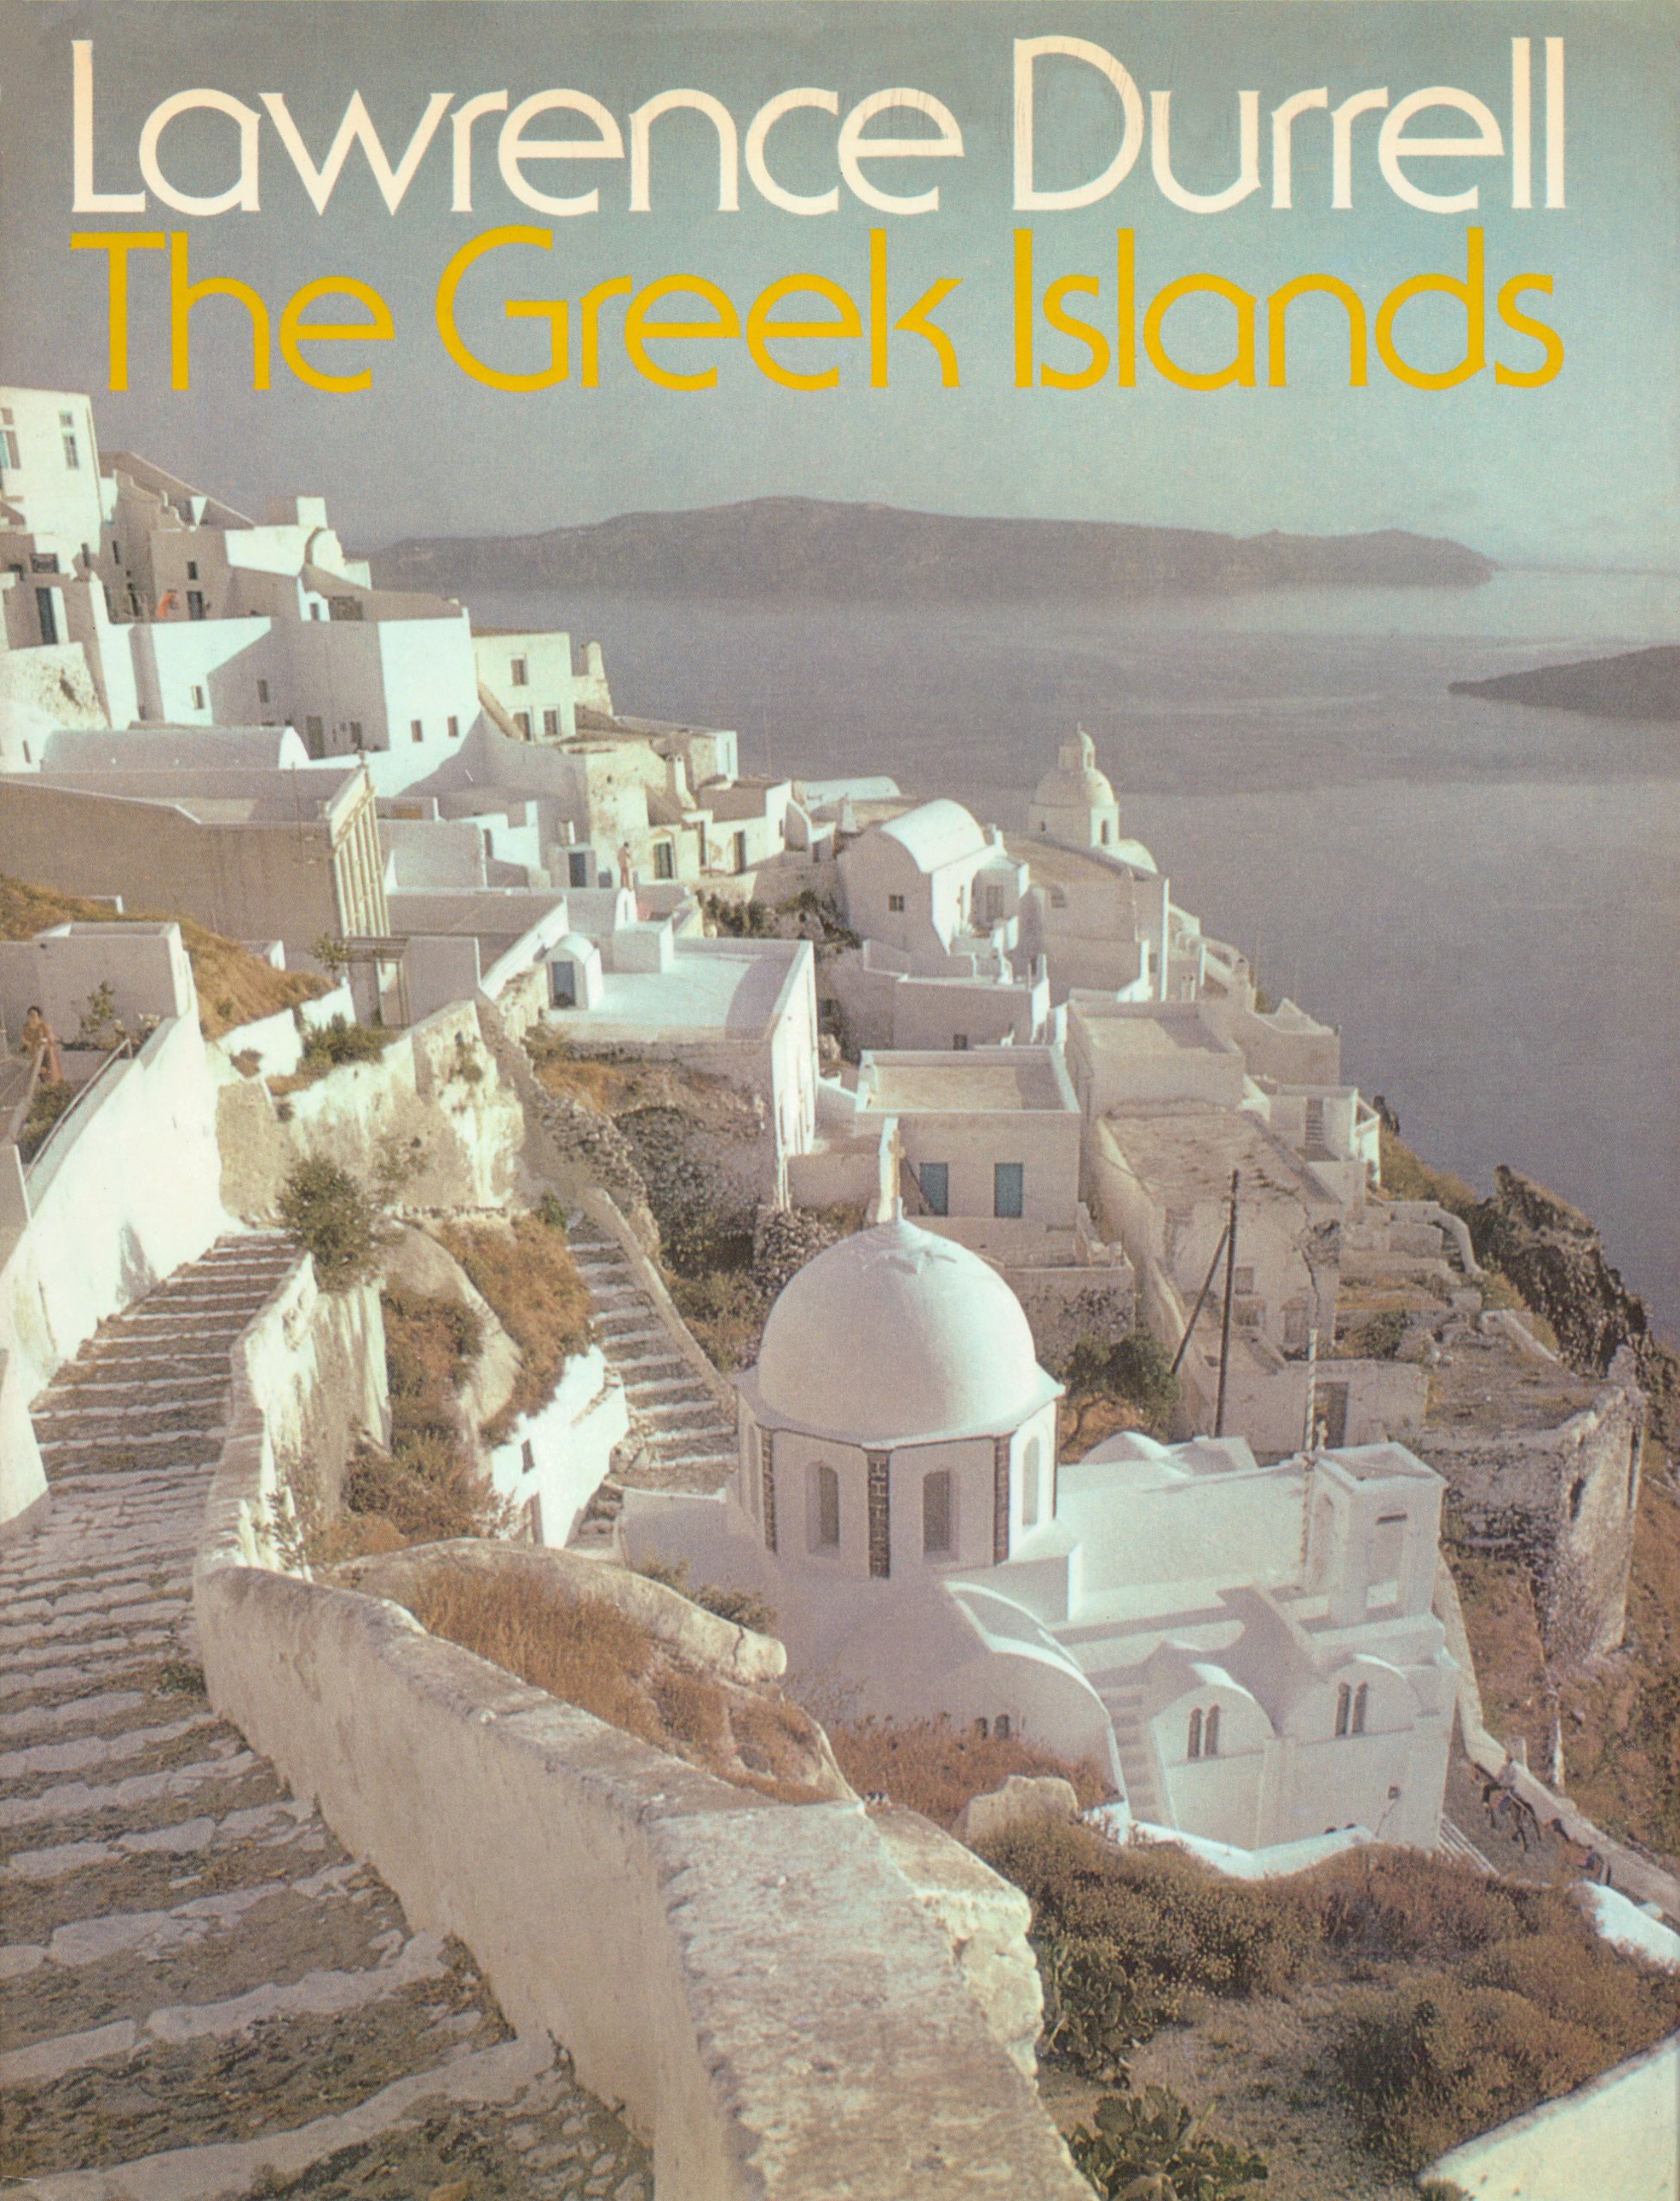 The Greek Islands (A Studio Book), Lawrence Durrell